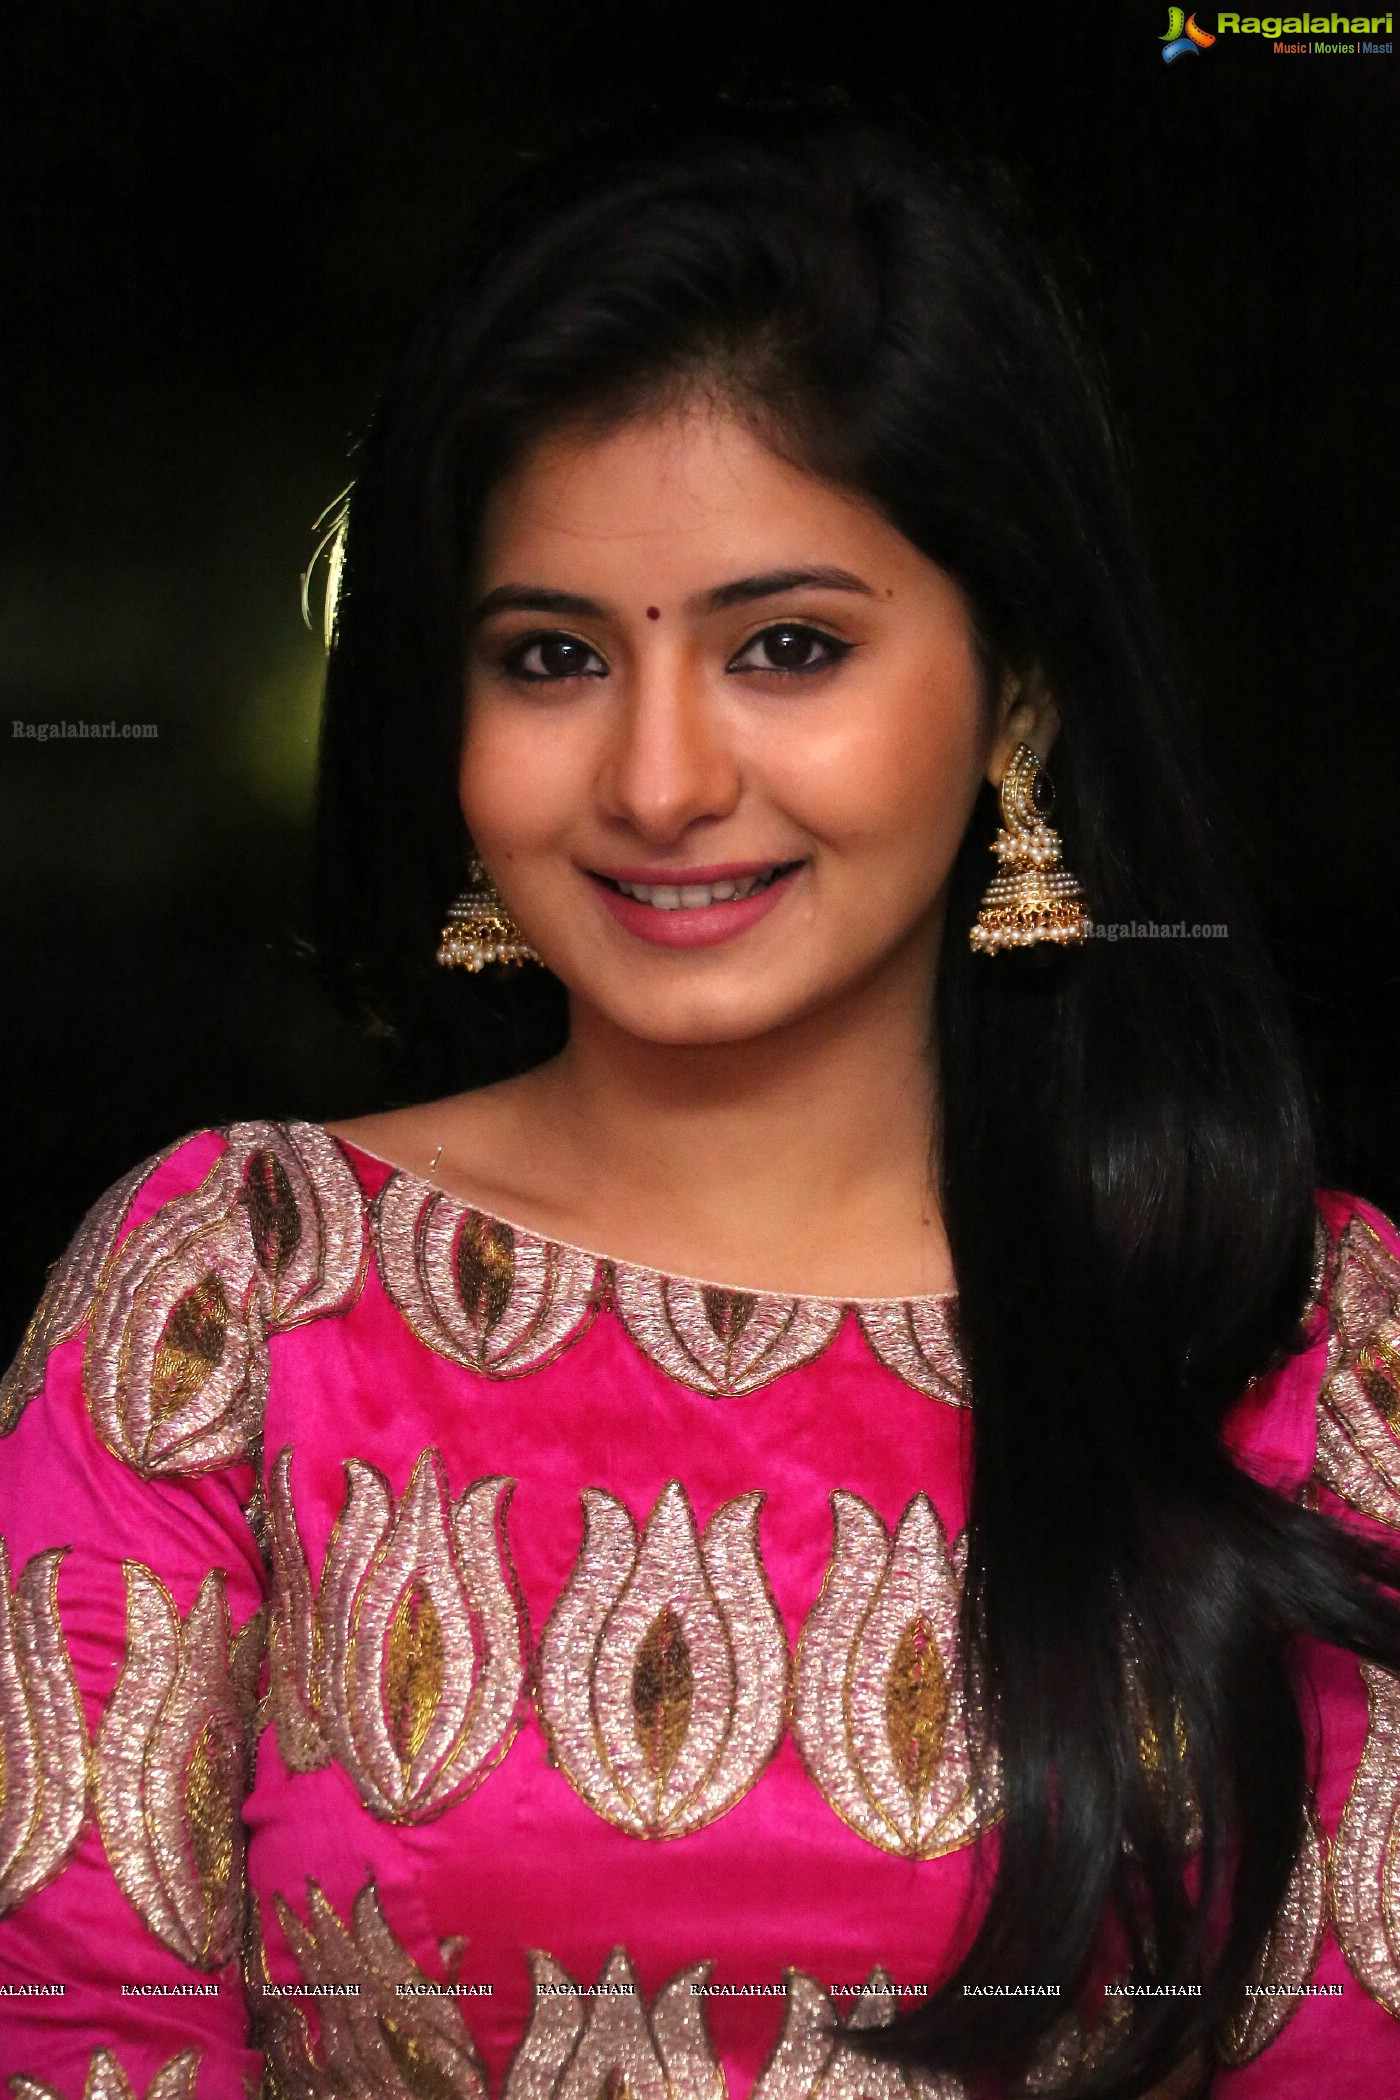 Reshmi Menon Posters Image 28 Tollywood Actress Hot Images